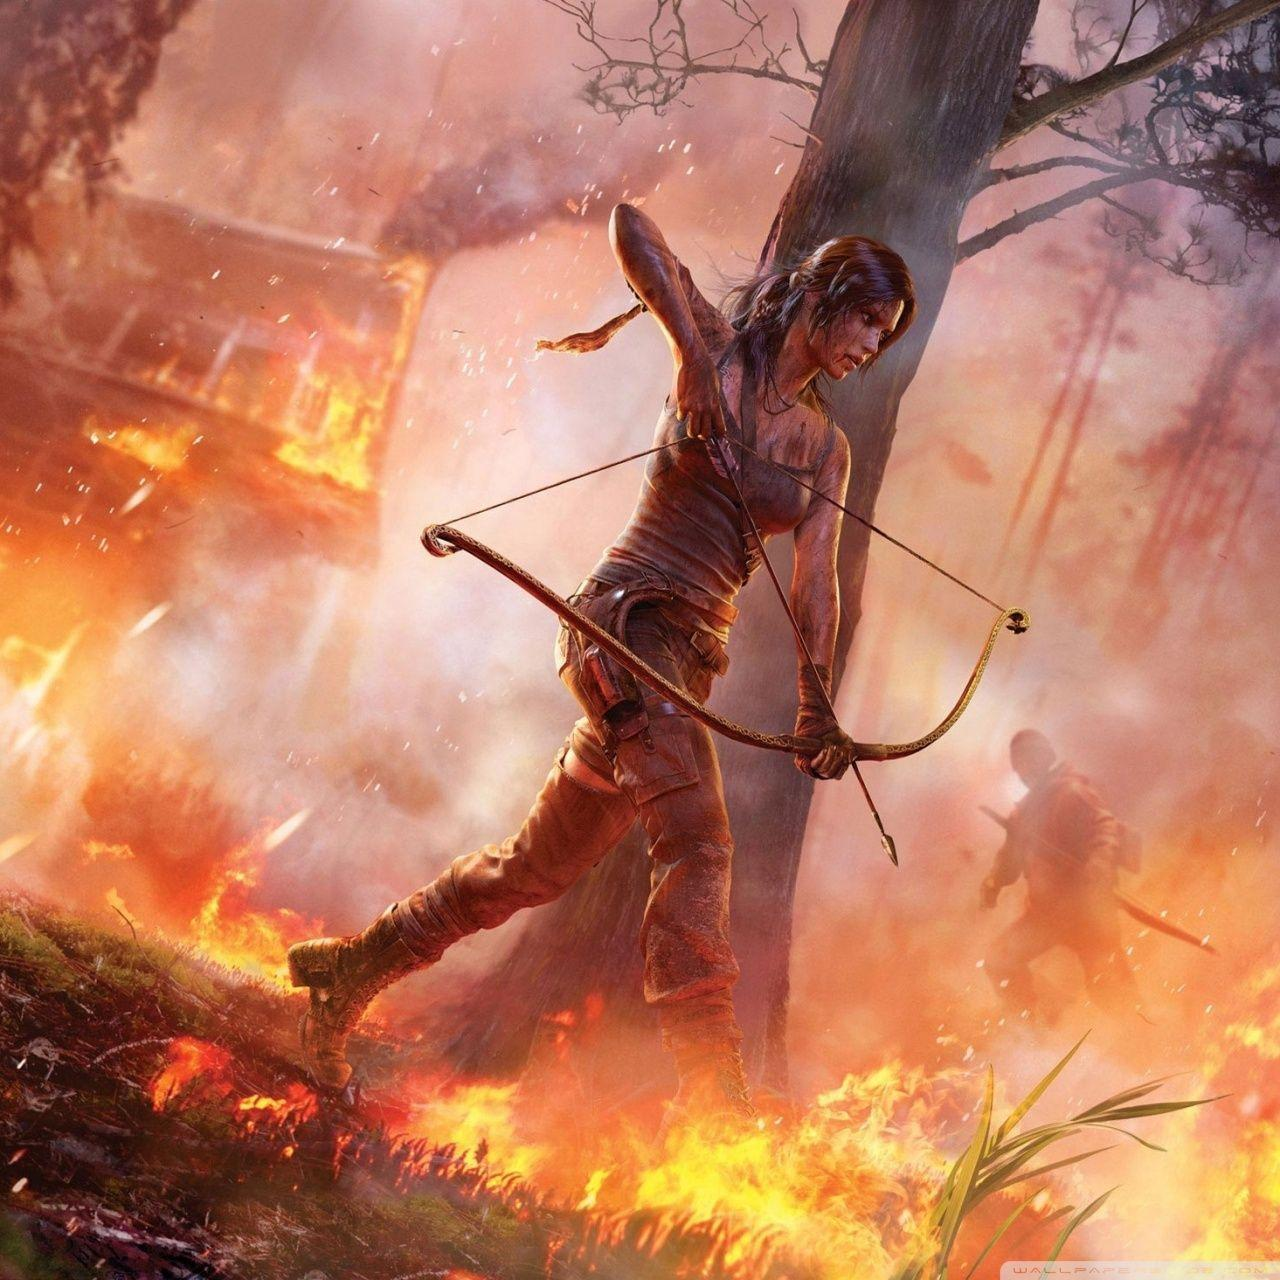 Tomb Rider Wallpaper: Tomb Raider 2017 Android Wallpapers